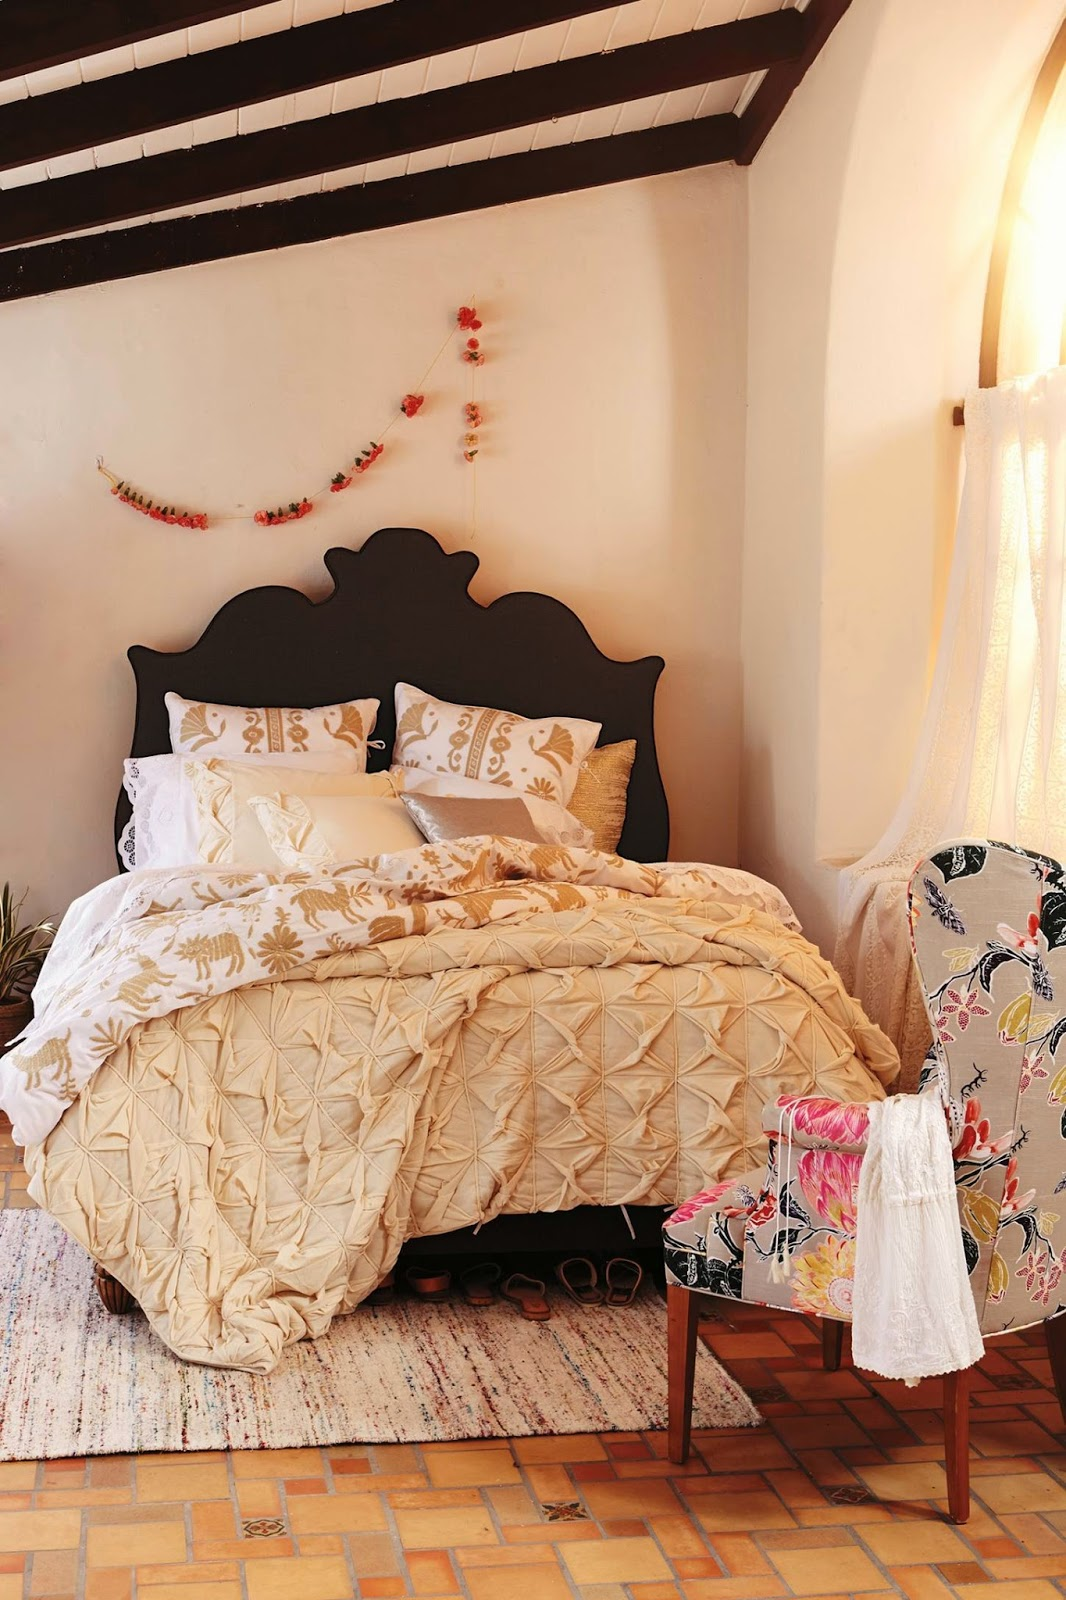 Anthropologie Bedroom: Effortlessly With Roxy: Eye Candy: Anthropologie May 2014